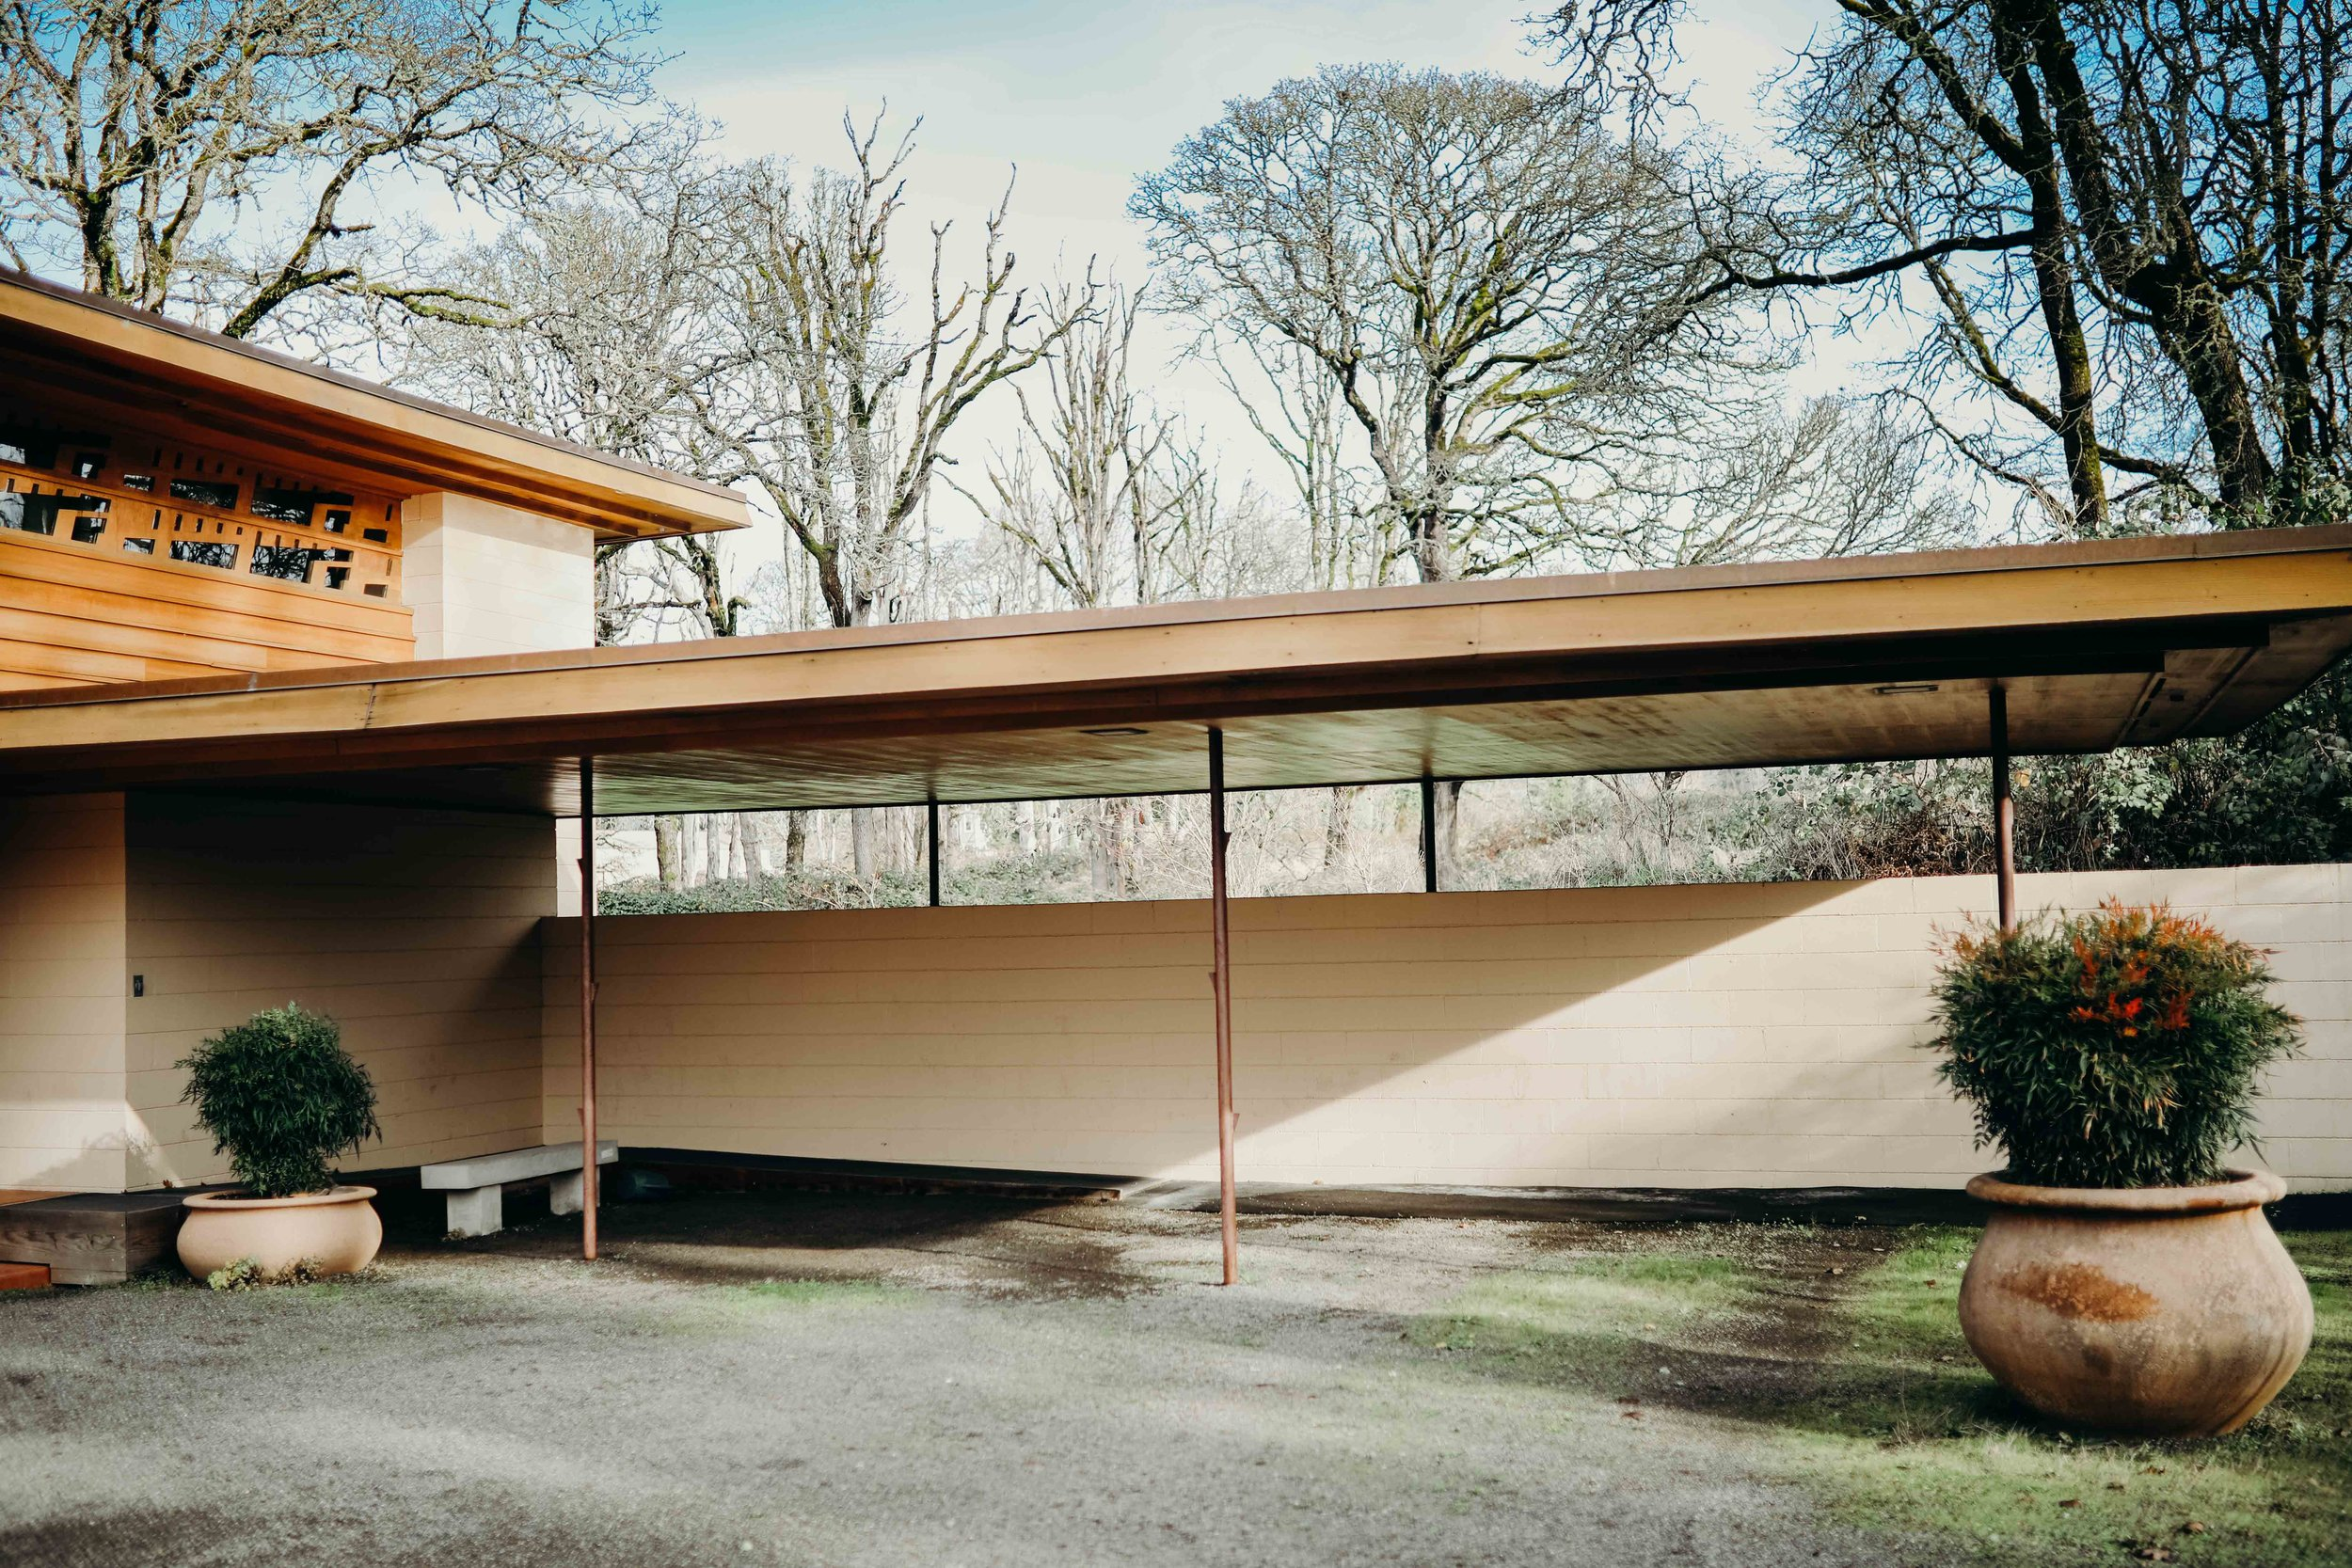 Who knew that FLW invented the carport?